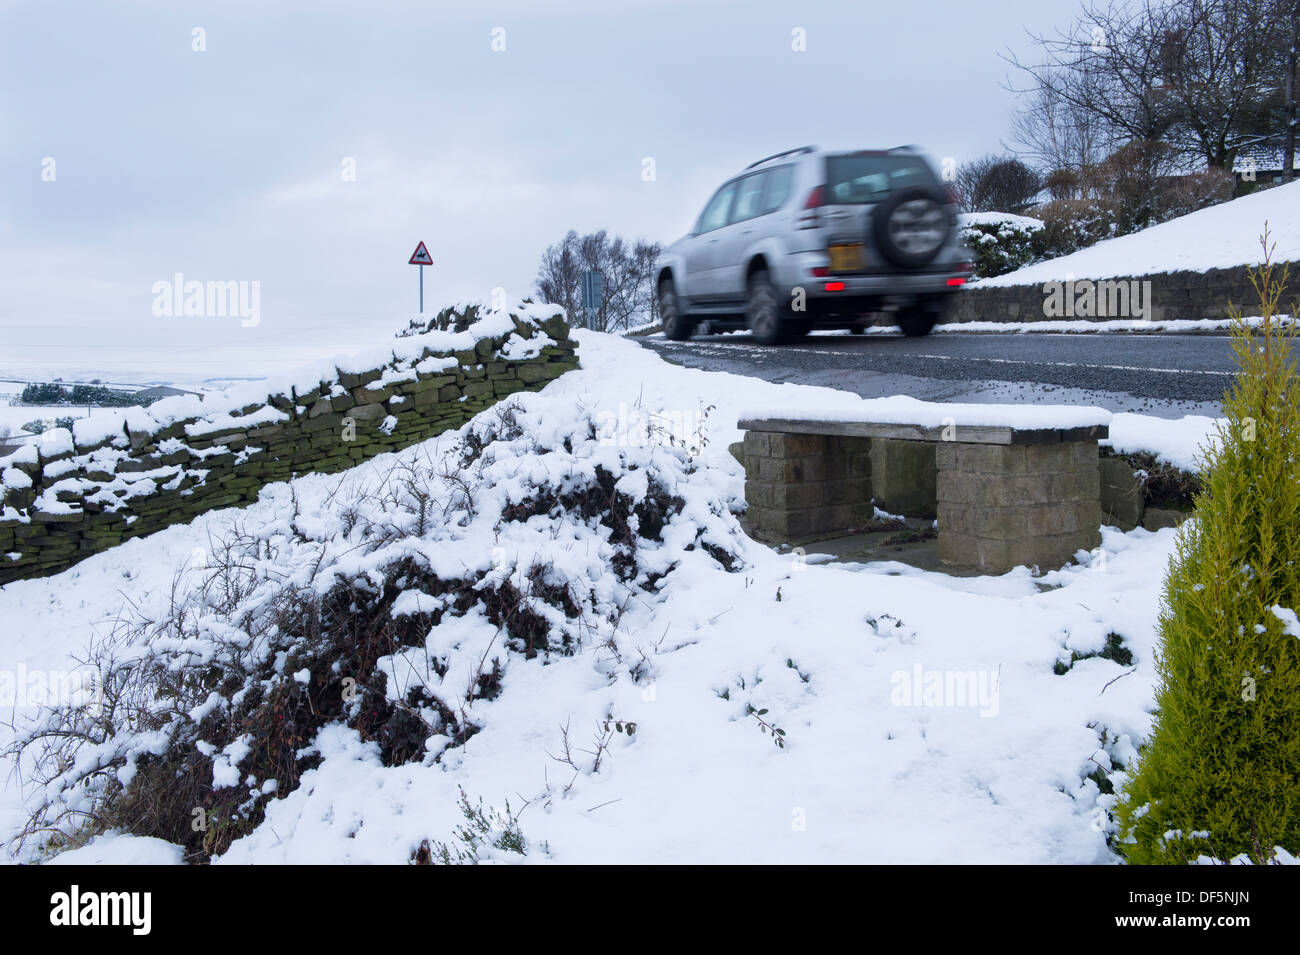 Blurred motion of Toyota Land Cruiser 4x4, traveling past white fields along country lane on a cold, snowy winter's day - West Yorkshire, England, UK. - Stock Image